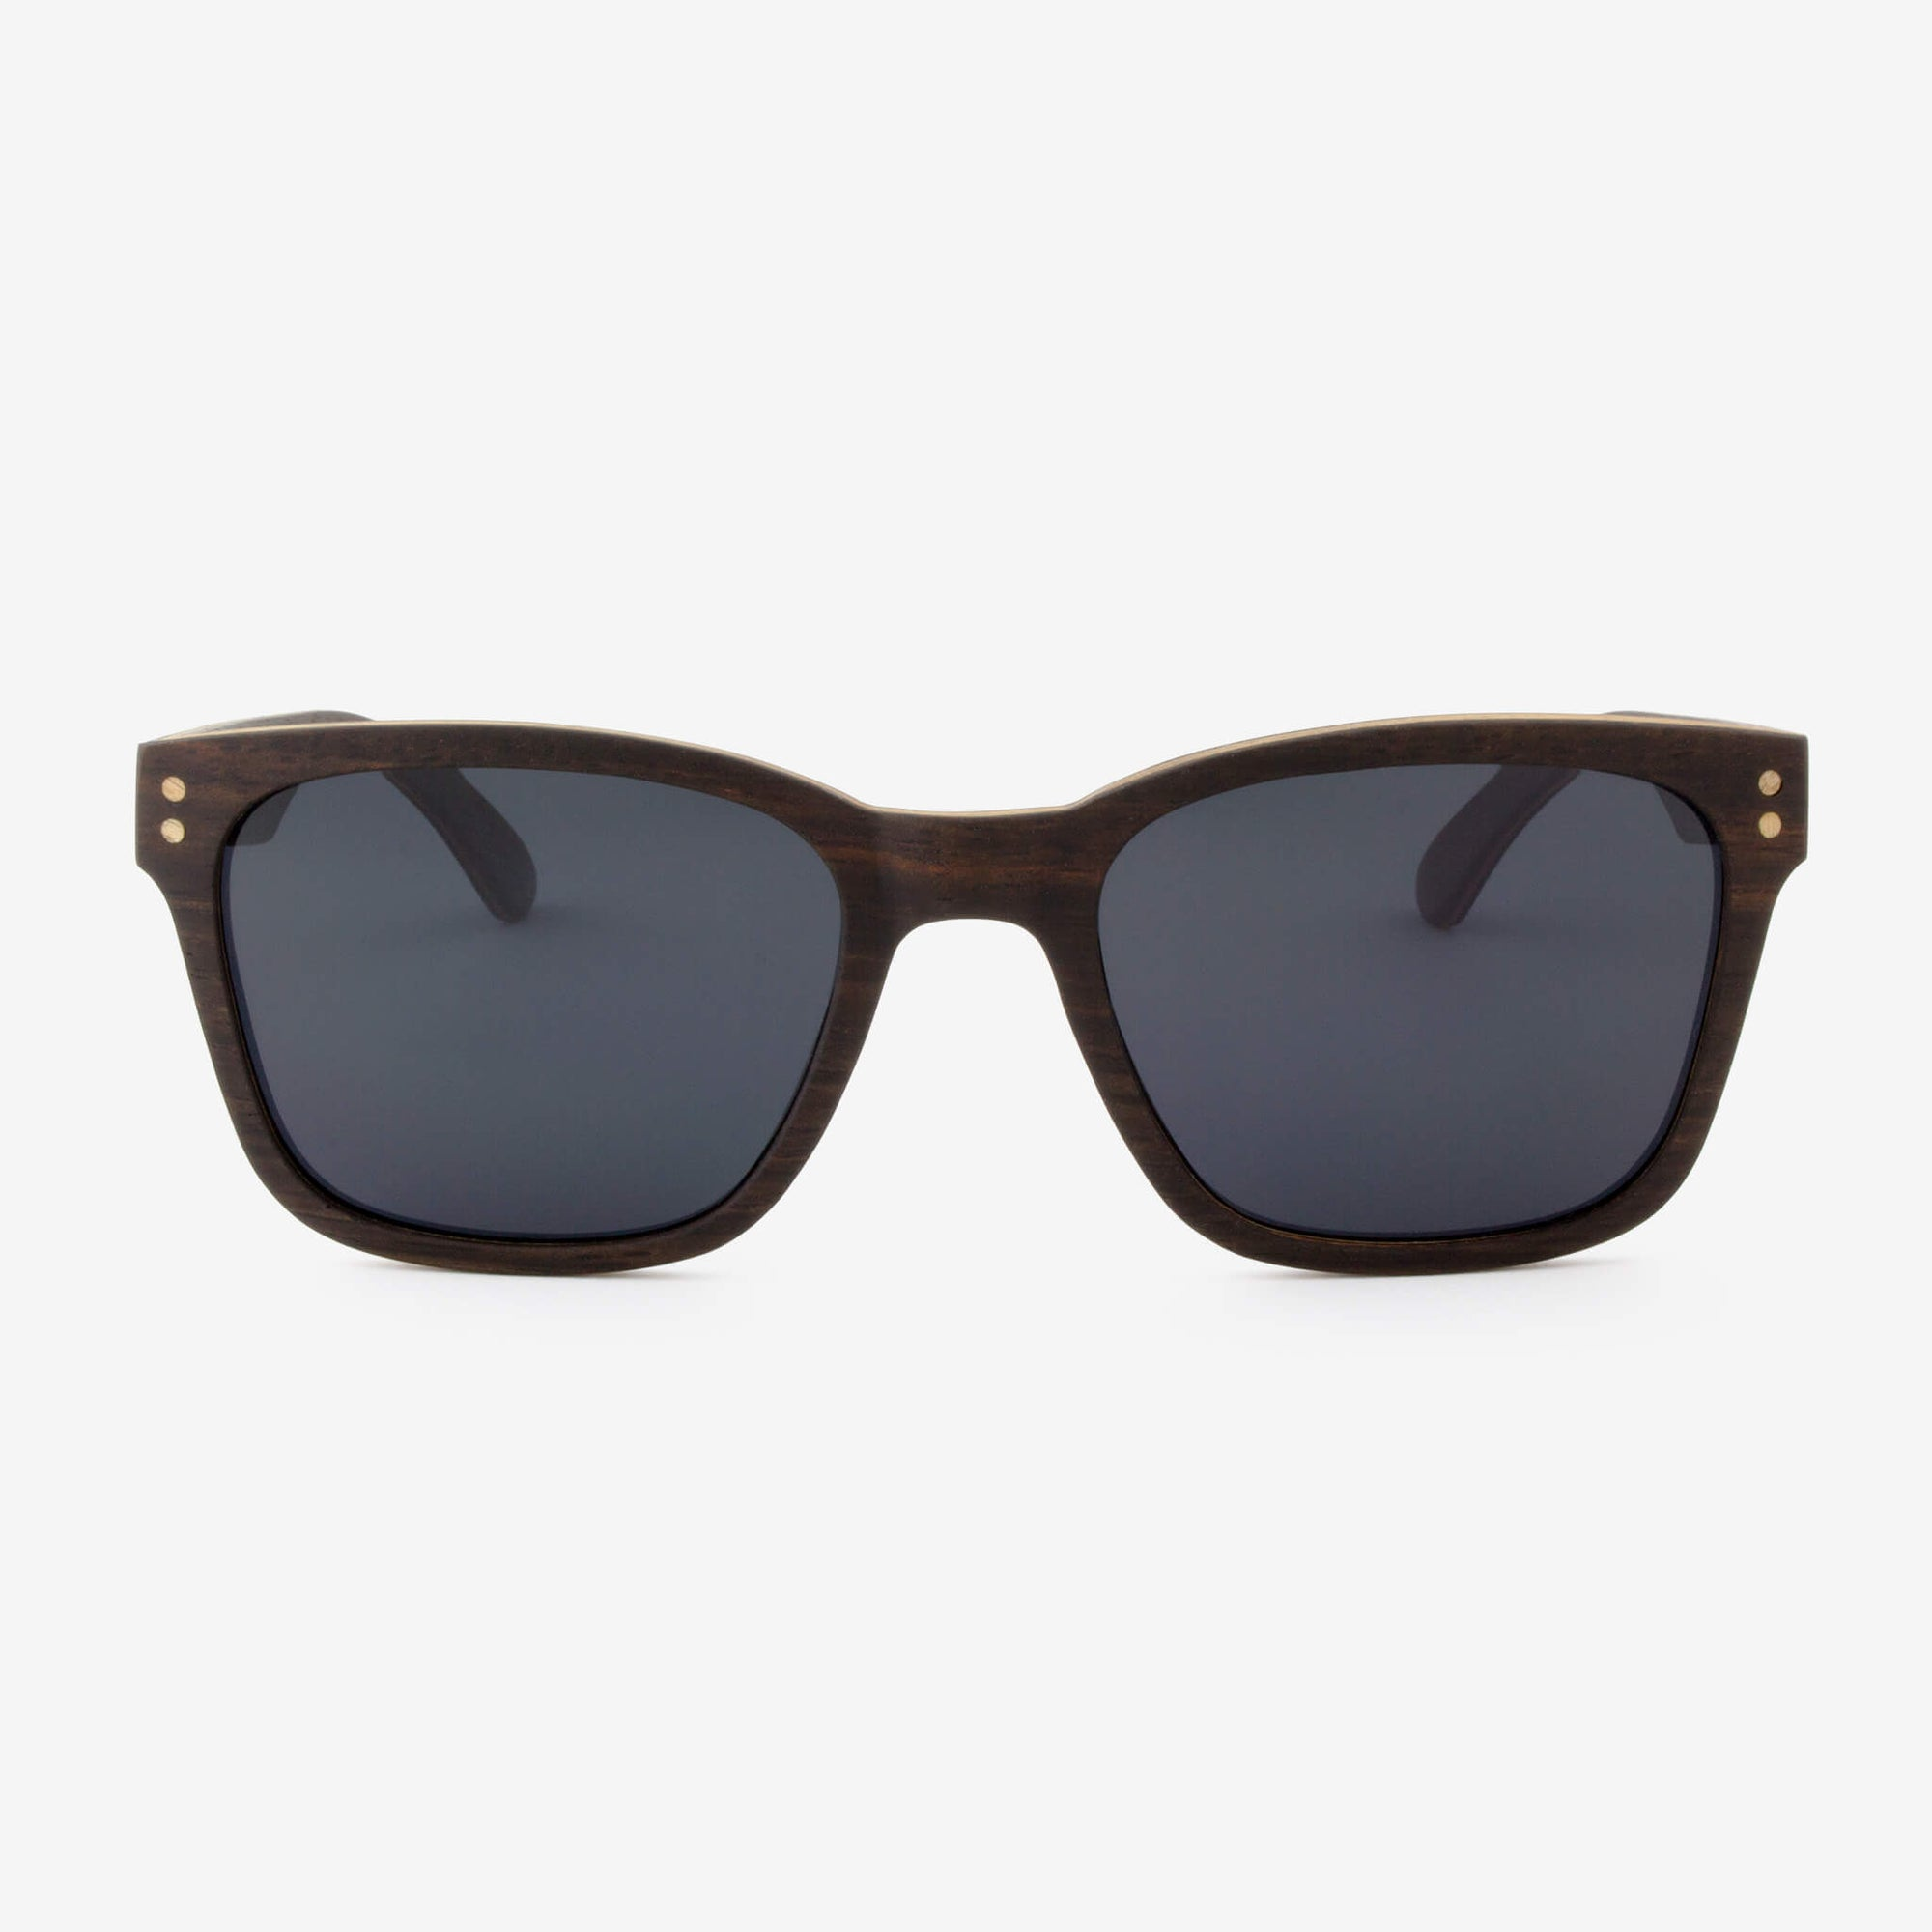 Flagler ebony adjustable wood sunglasses